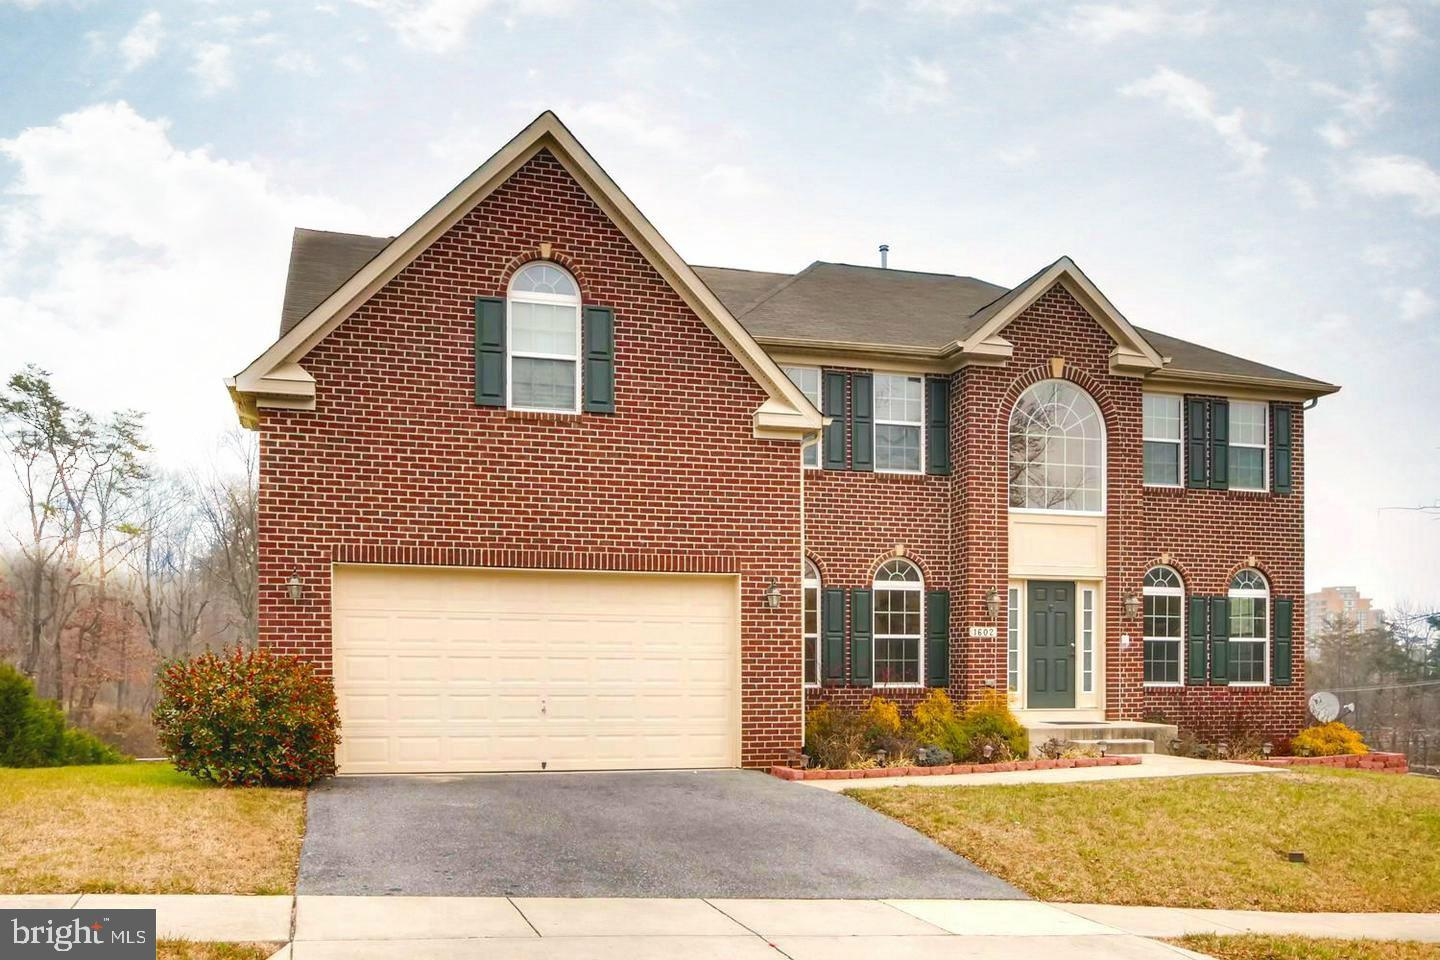 Single Family Home for Sale at 1602 Lindley Drive 1602 Lindley Drive Hanover, Maryland 21076 United States